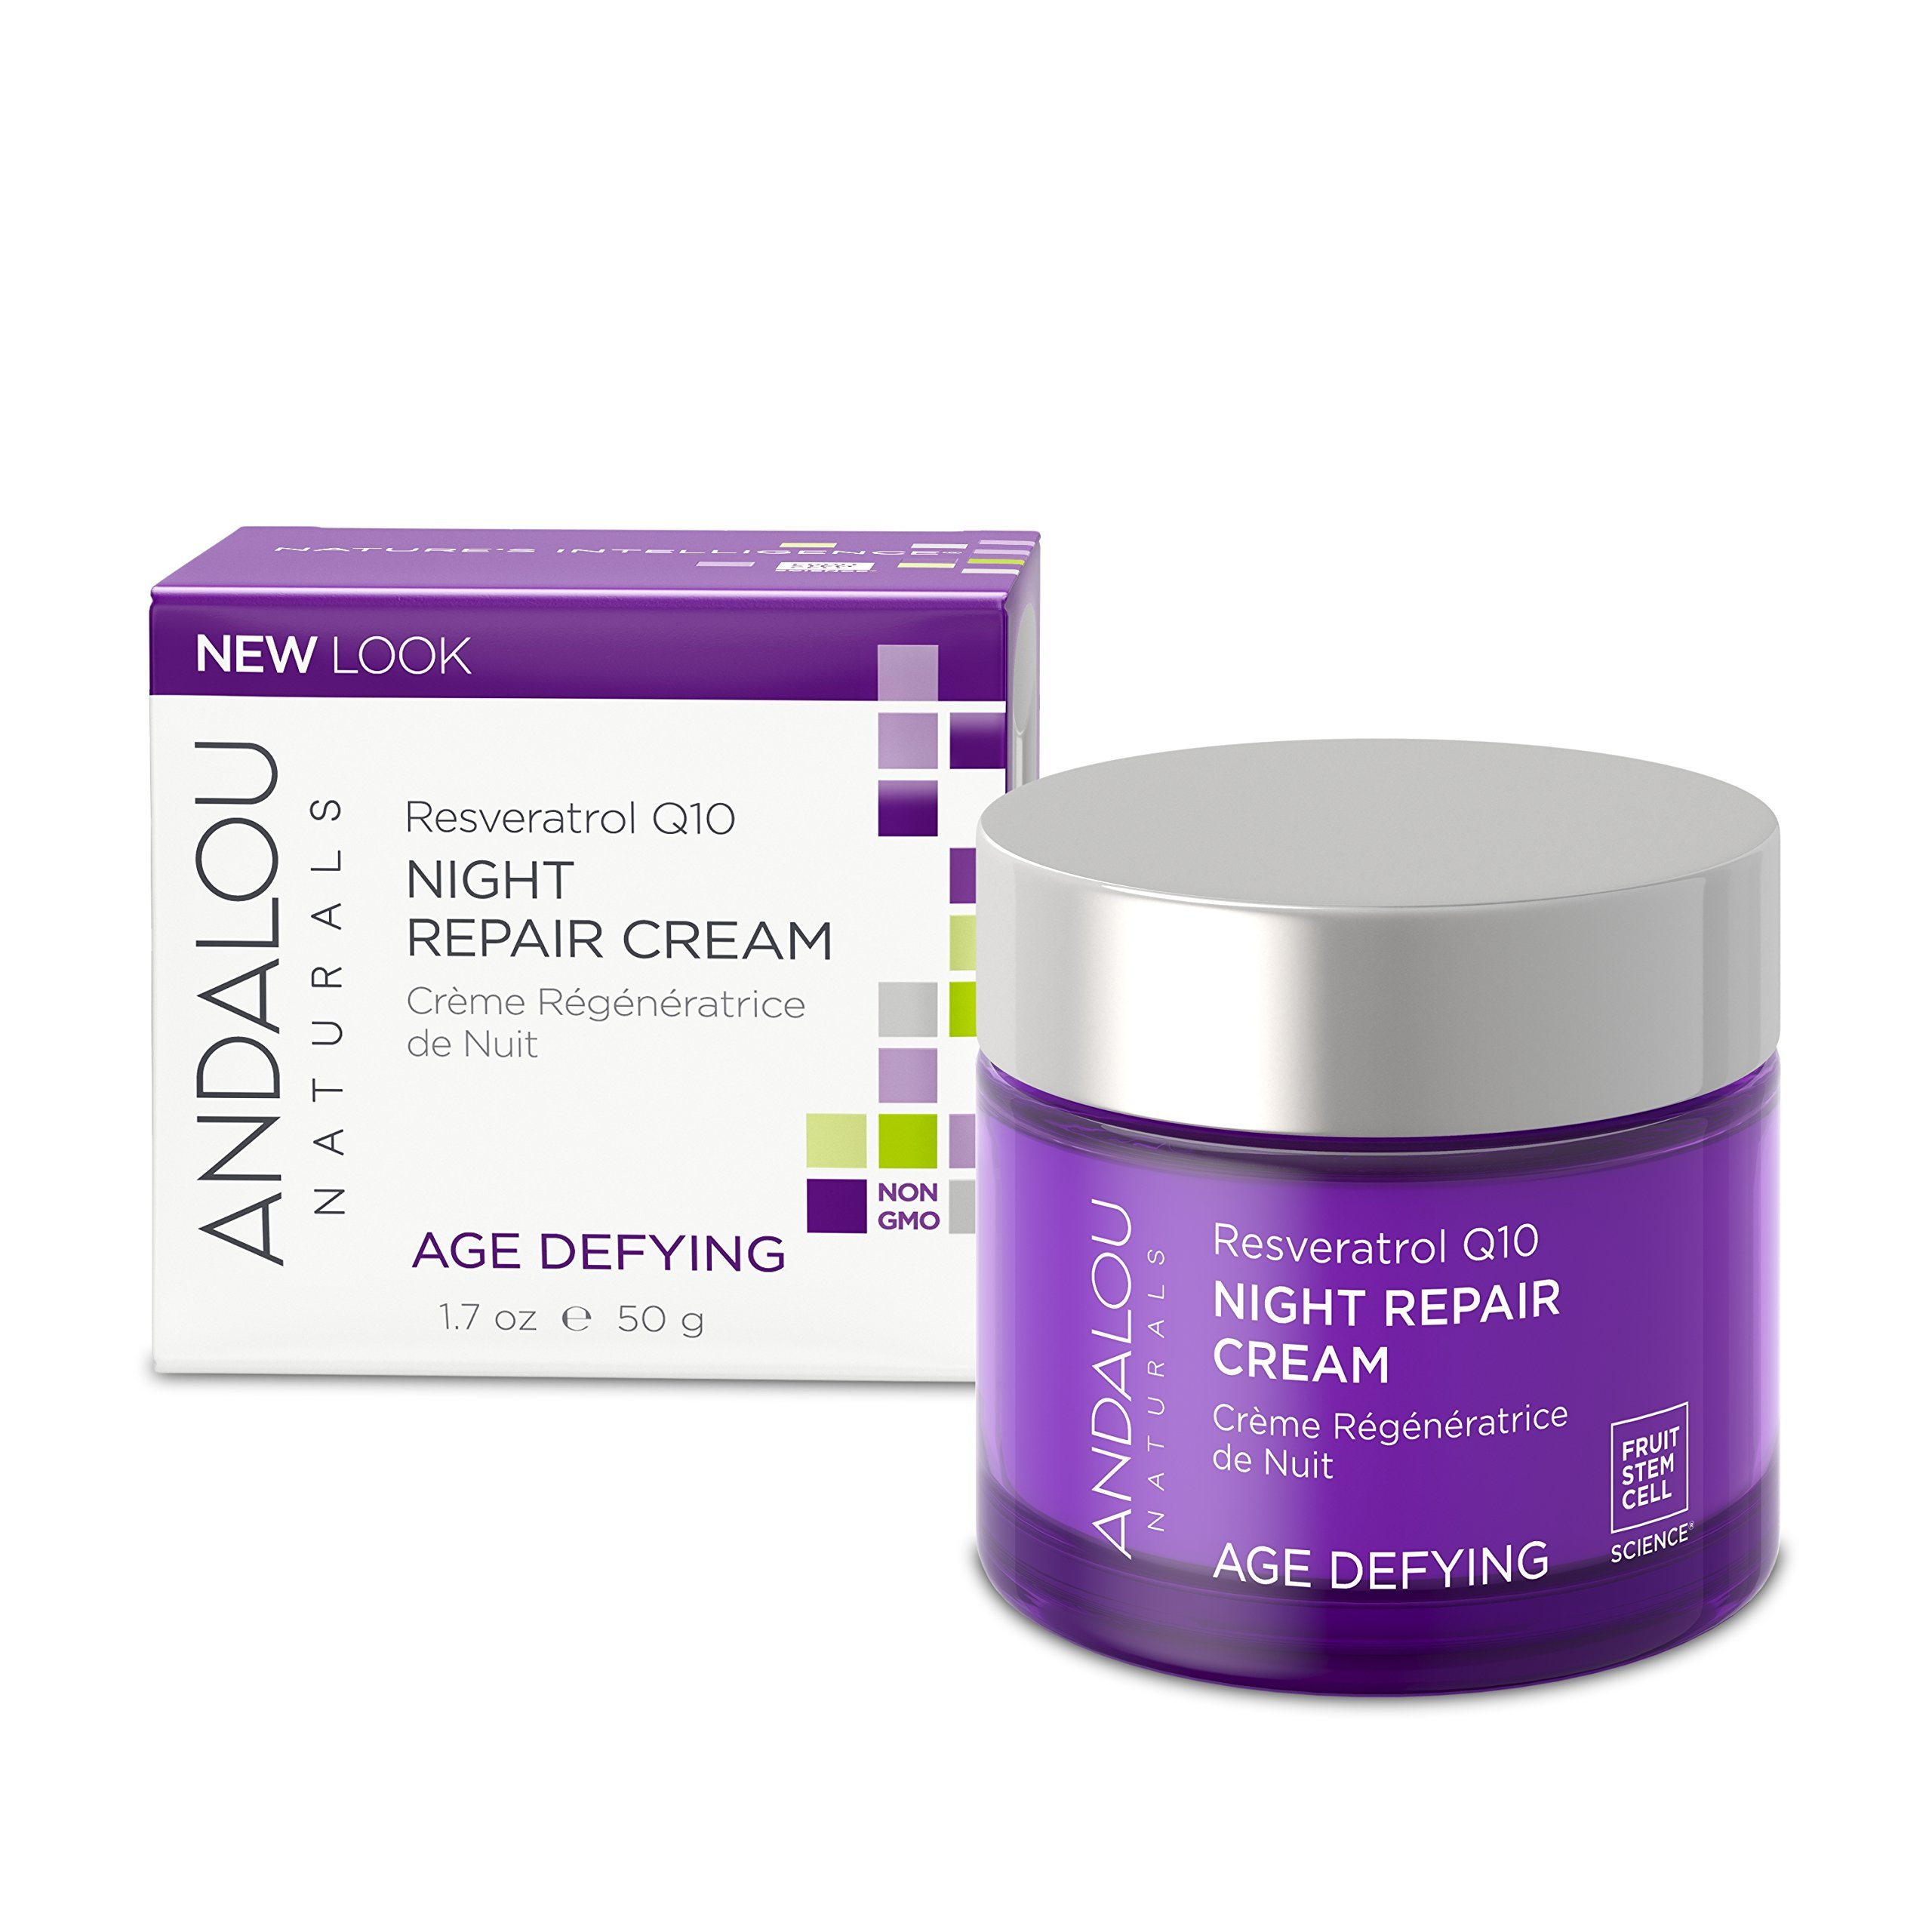 Andalou Naturals Resveratrol Q10 Night Repair Cream, 1.7 oz, For Dry Skin, Fine Lines & Wrinkles, For Softer, Smoother, Younger Looking Skin by Andalou Naturals (Image #6)